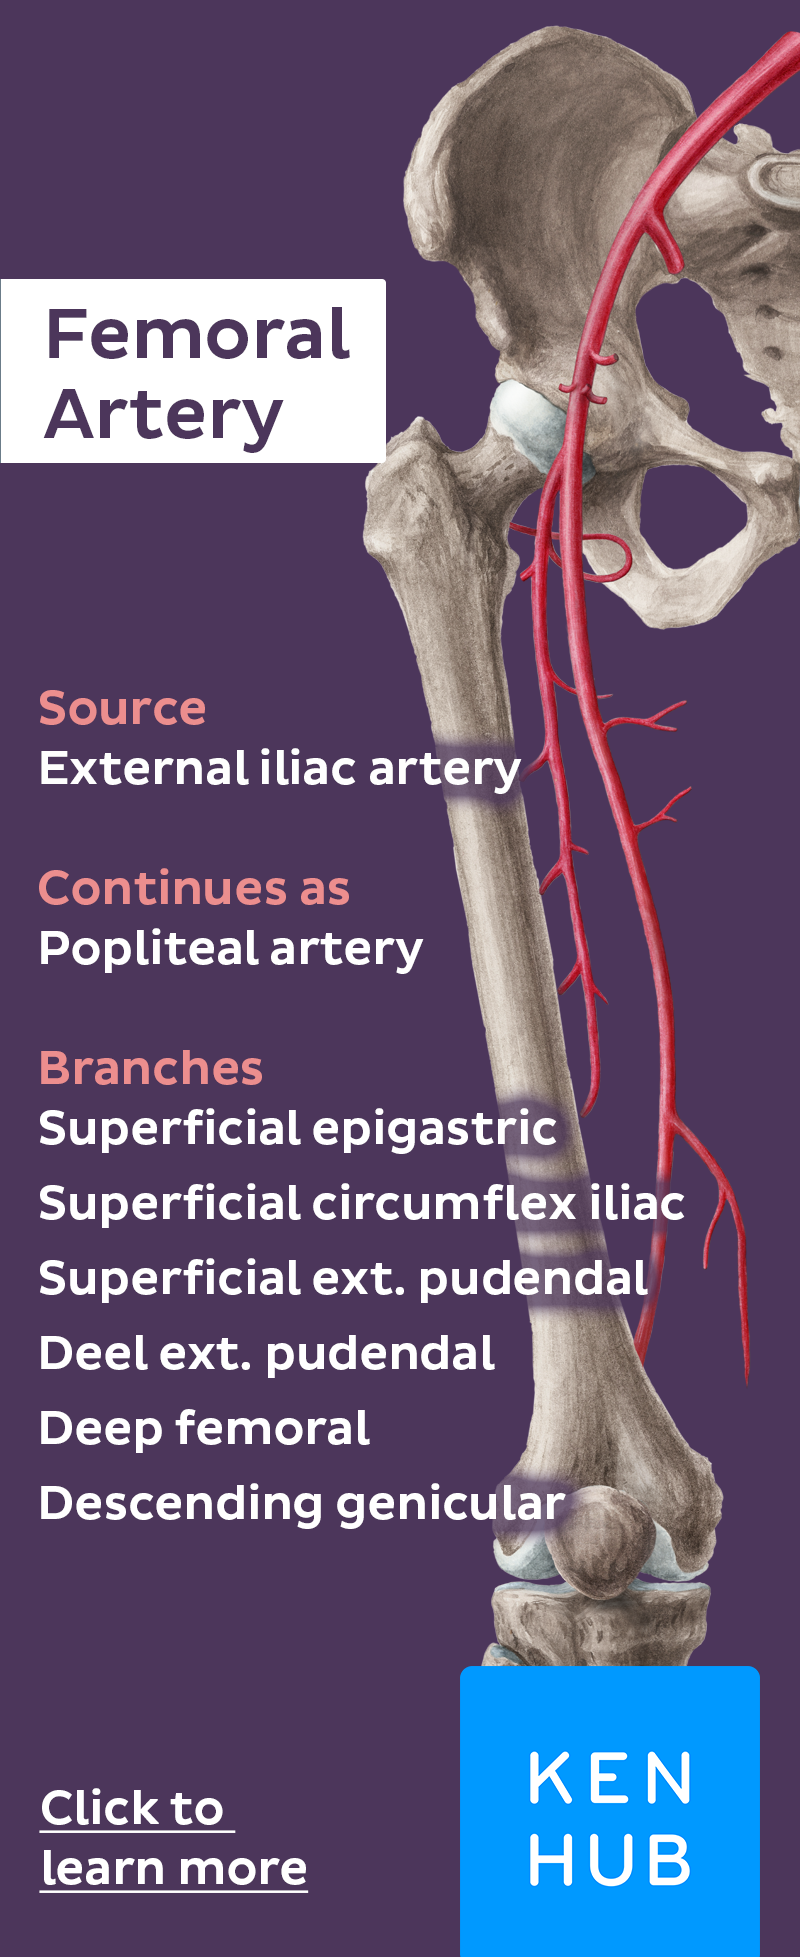 Femoral Artery | Cardiothoracic surgeon | Pinterest | Anatomy, Blood ...